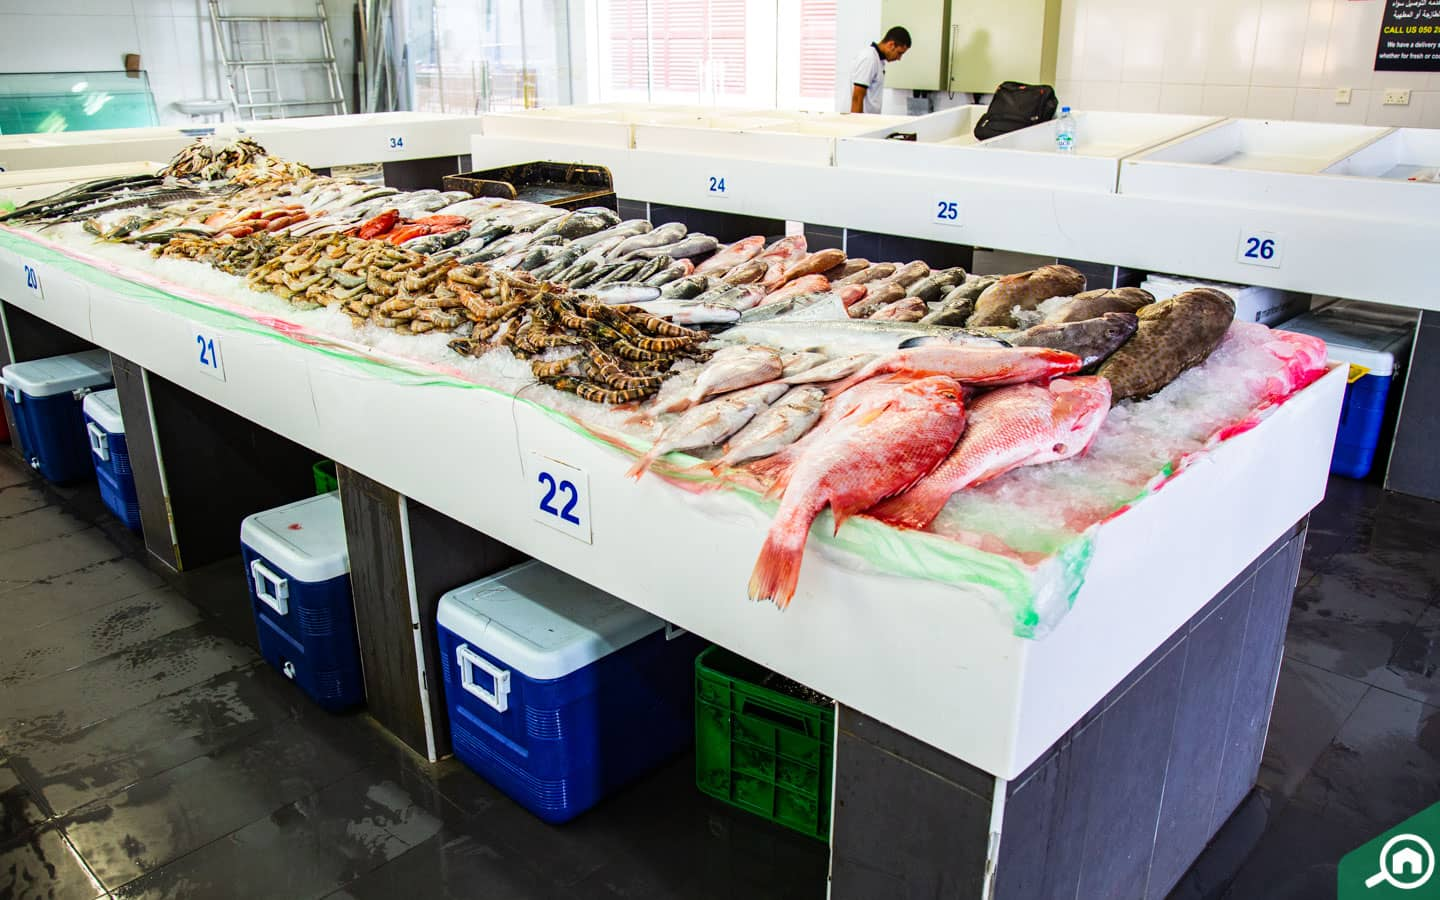 Shop on Wednesdays for seafoods